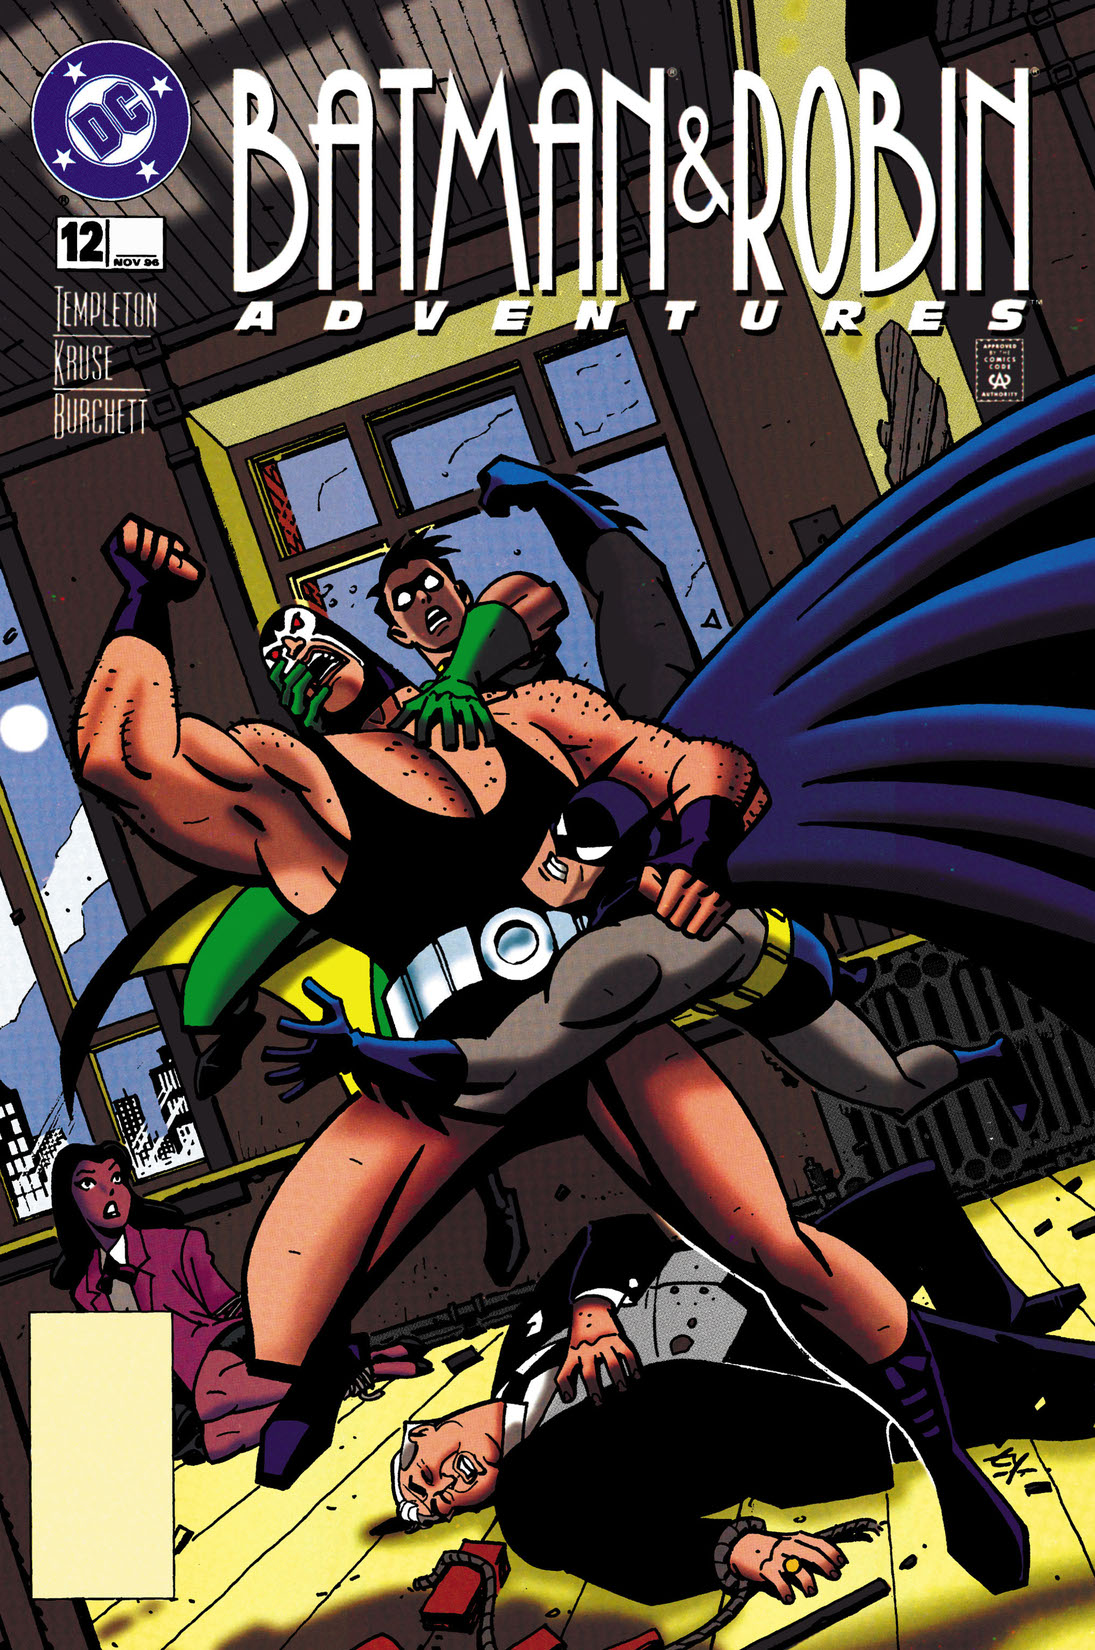 read the batman and robin adventures 1995 12 on dc. Black Bedroom Furniture Sets. Home Design Ideas